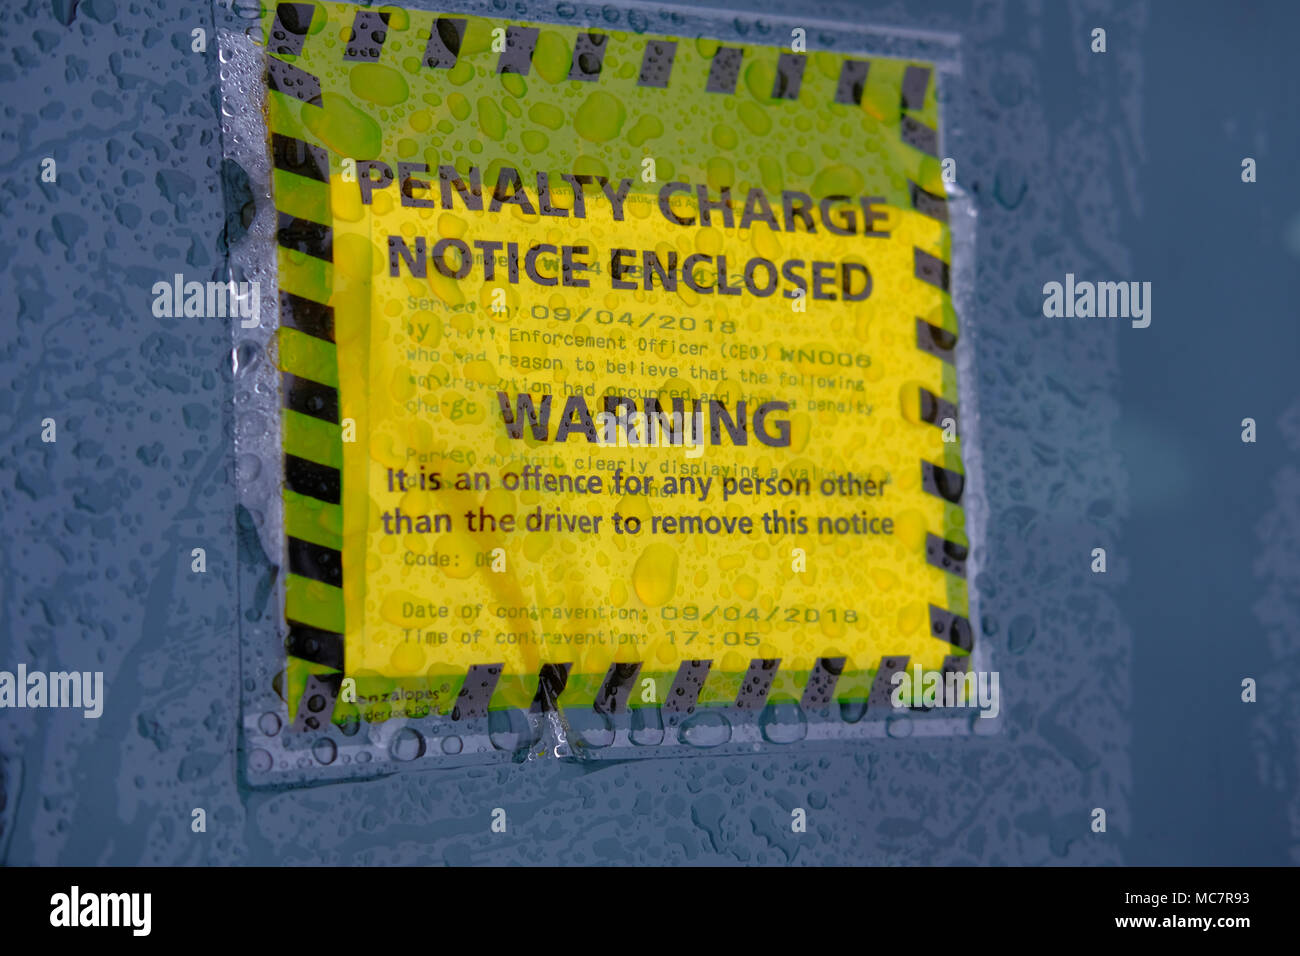 Penalty Charge for illegal parking. Parking ticket stuck on windscreen of a car - Stock Image